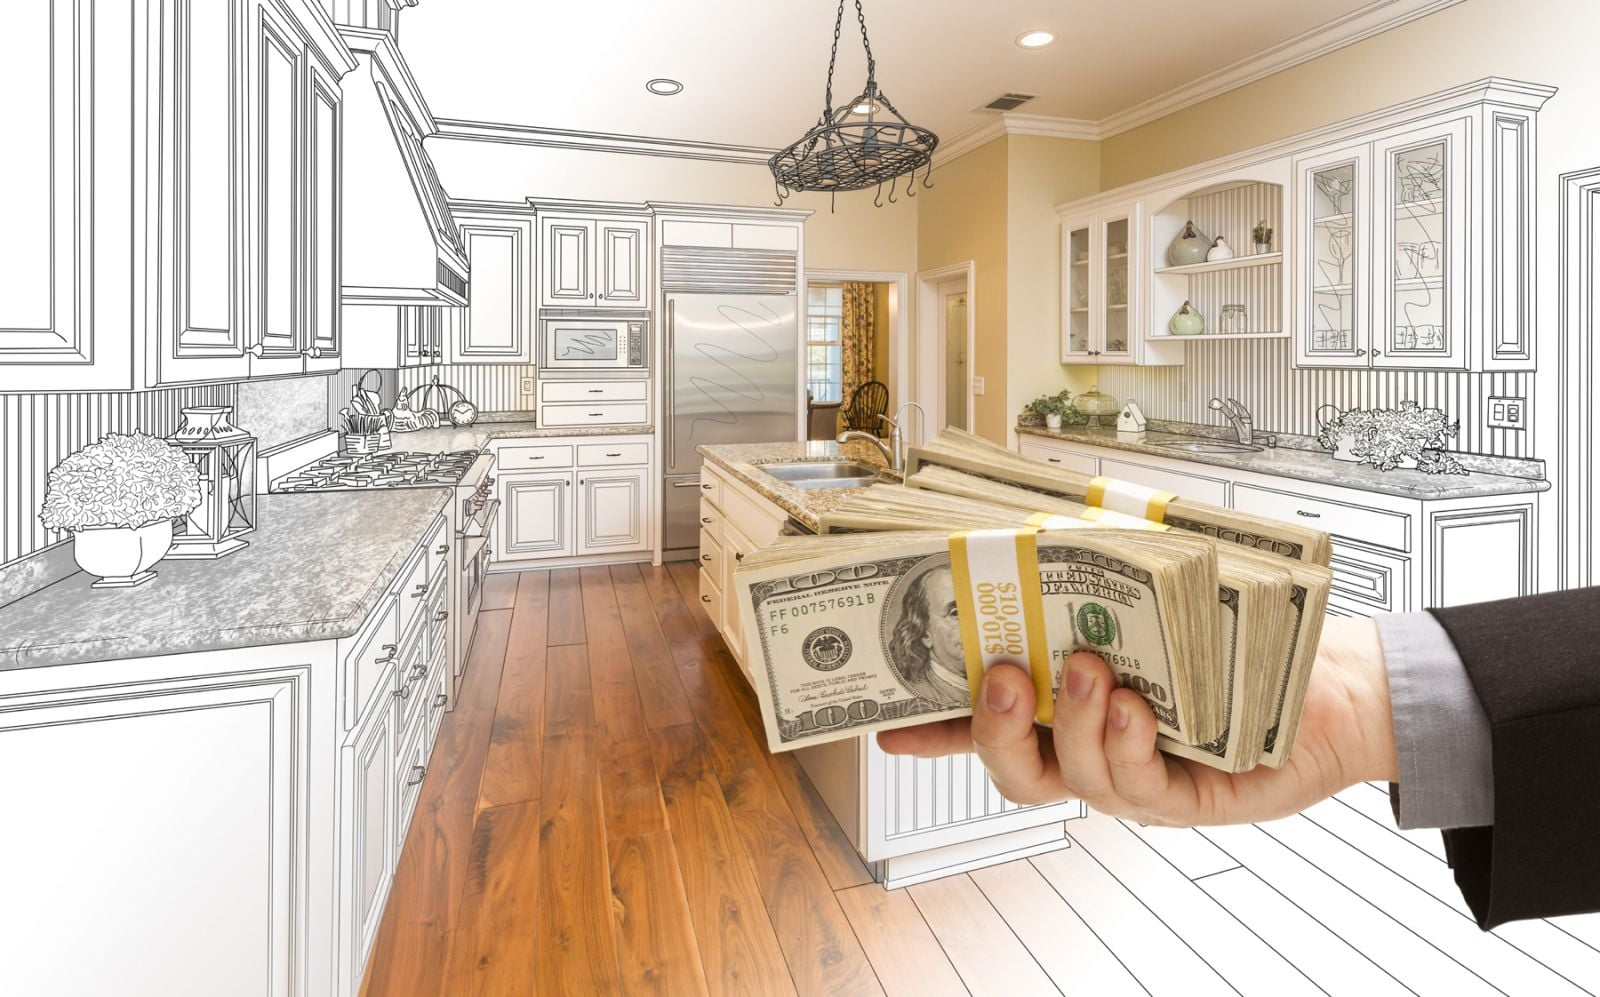 How much does it cost to remodel a kitchen high tech - How much do kitchen designers cost ...